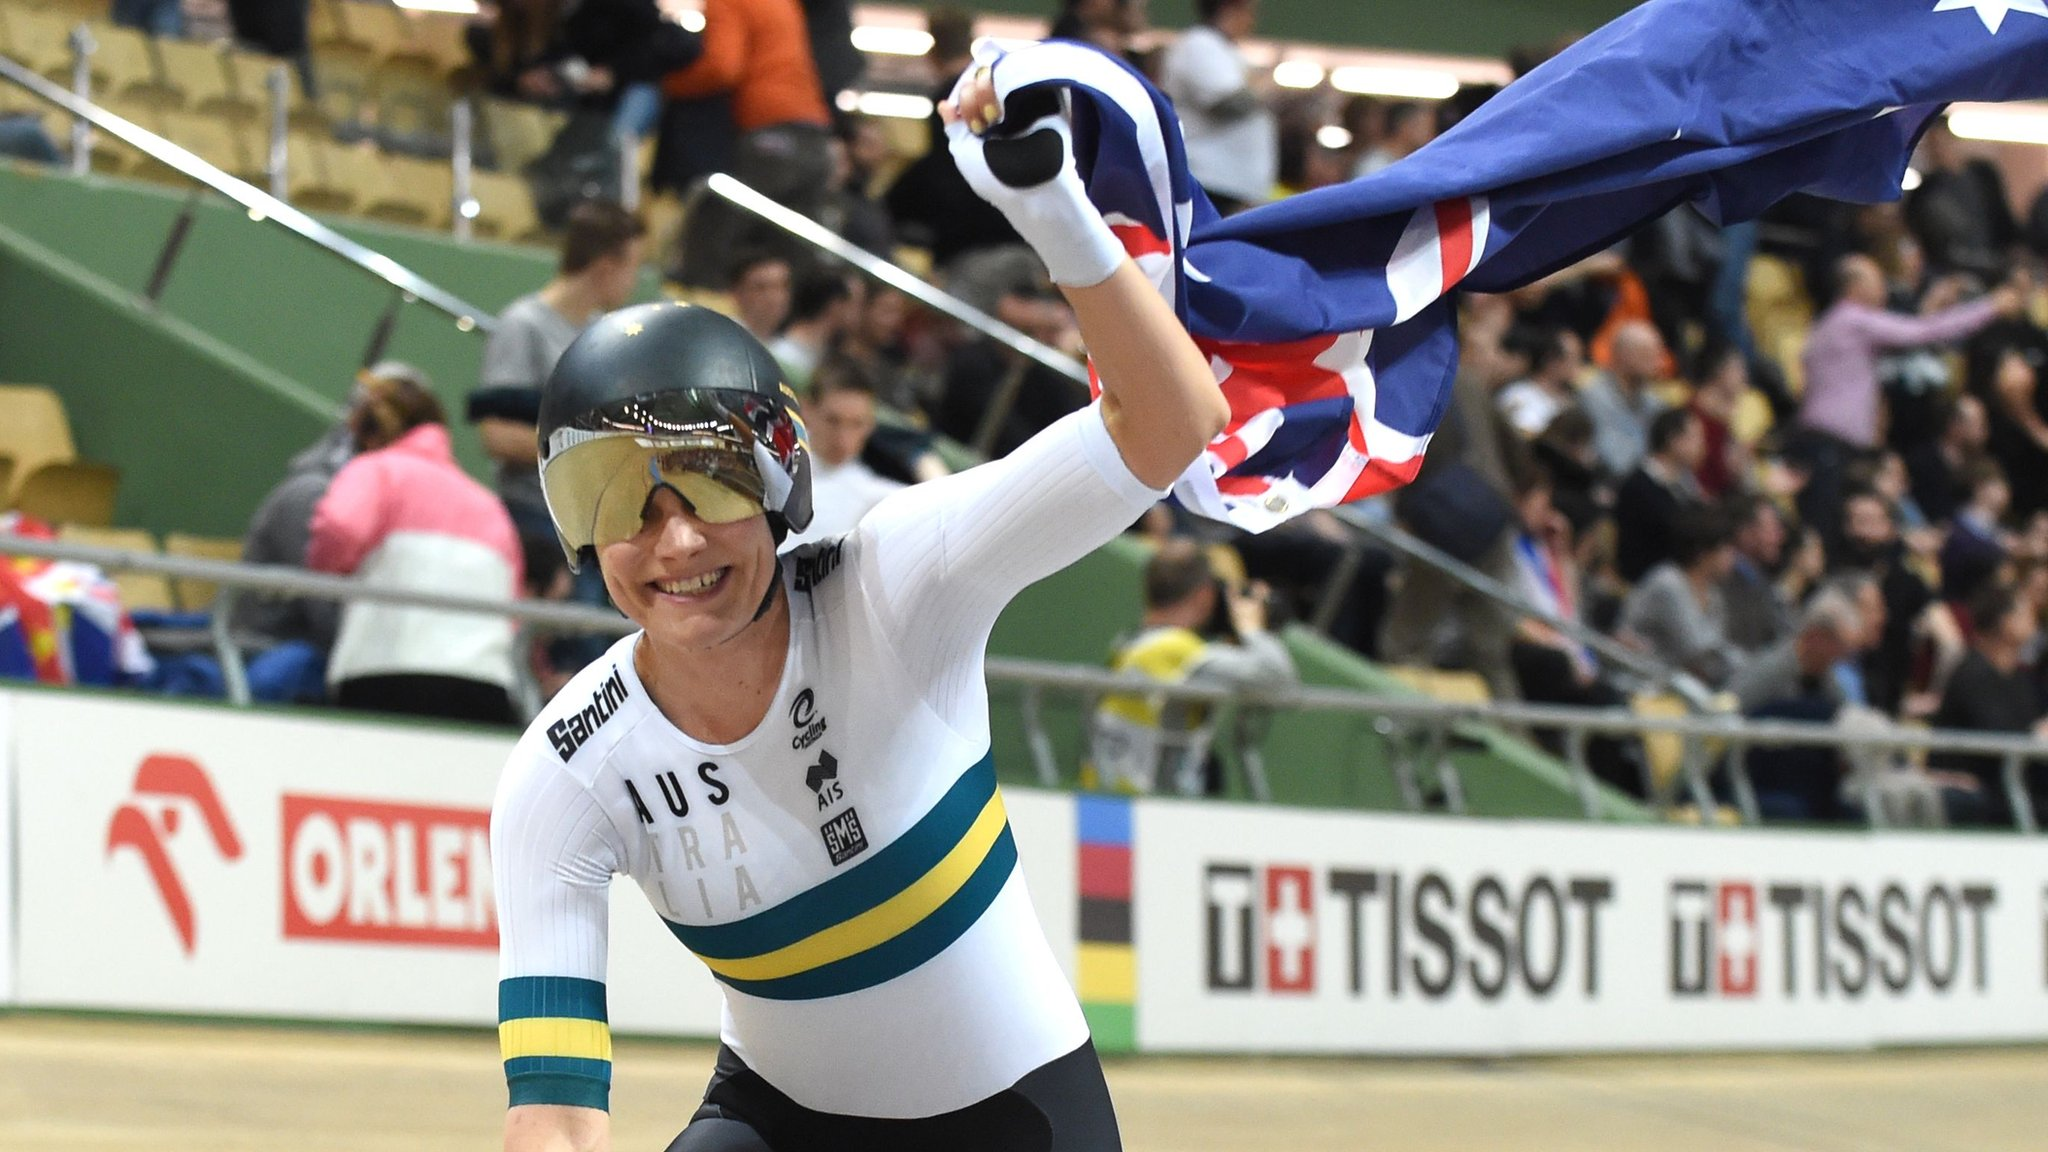 2019 Track Cycling World Championships: Australia hold on to beat Great Britain in thrilling team pursuit final